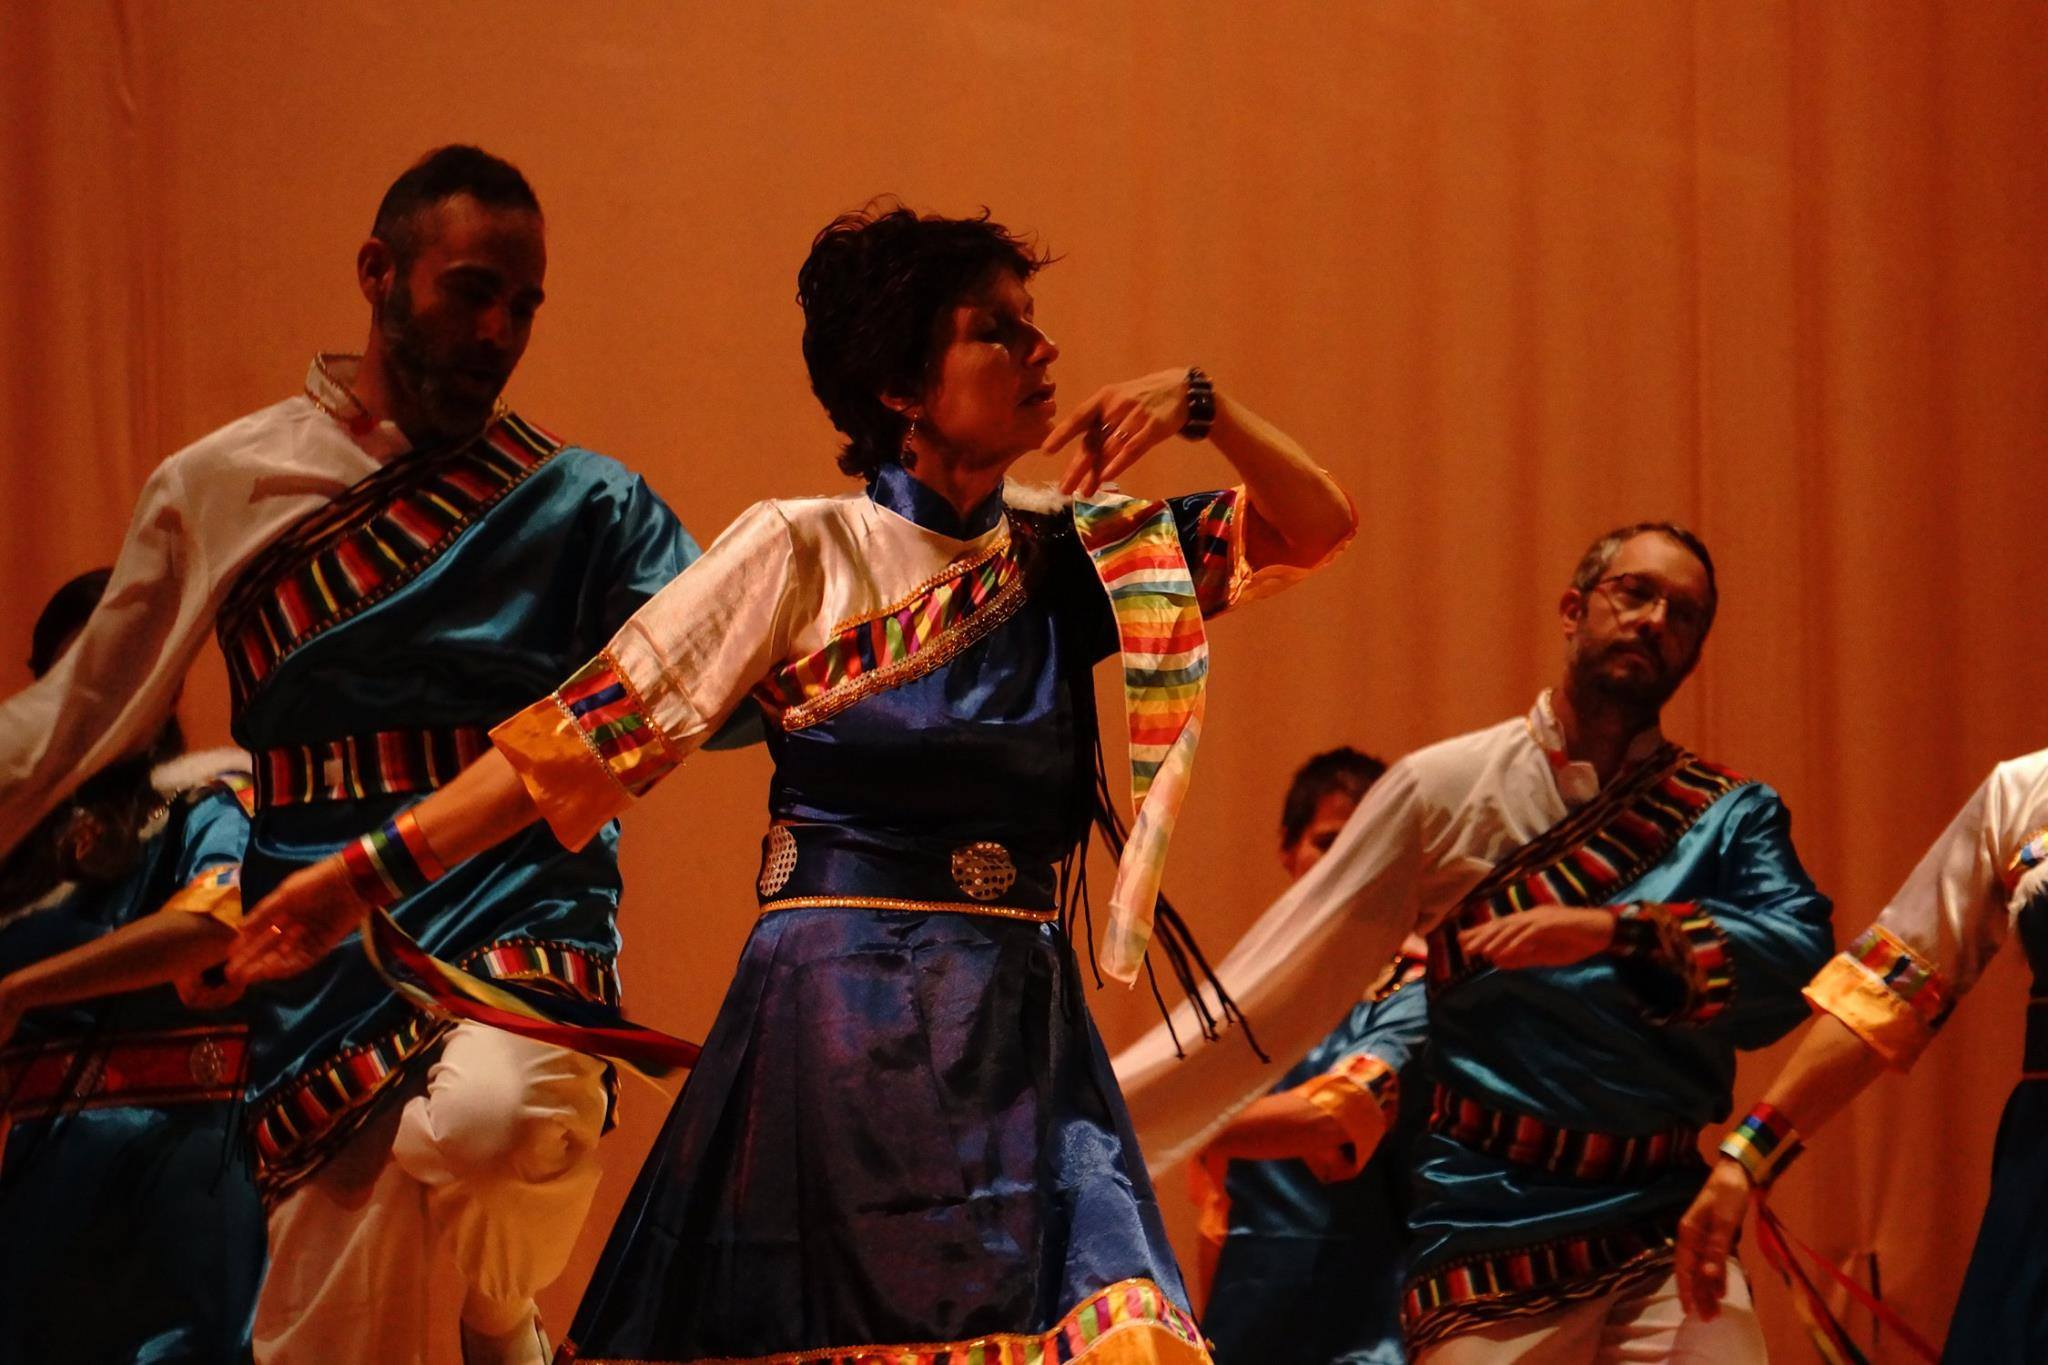 Khaita Dancers perform Saturday night July 12 at the Mohawk School